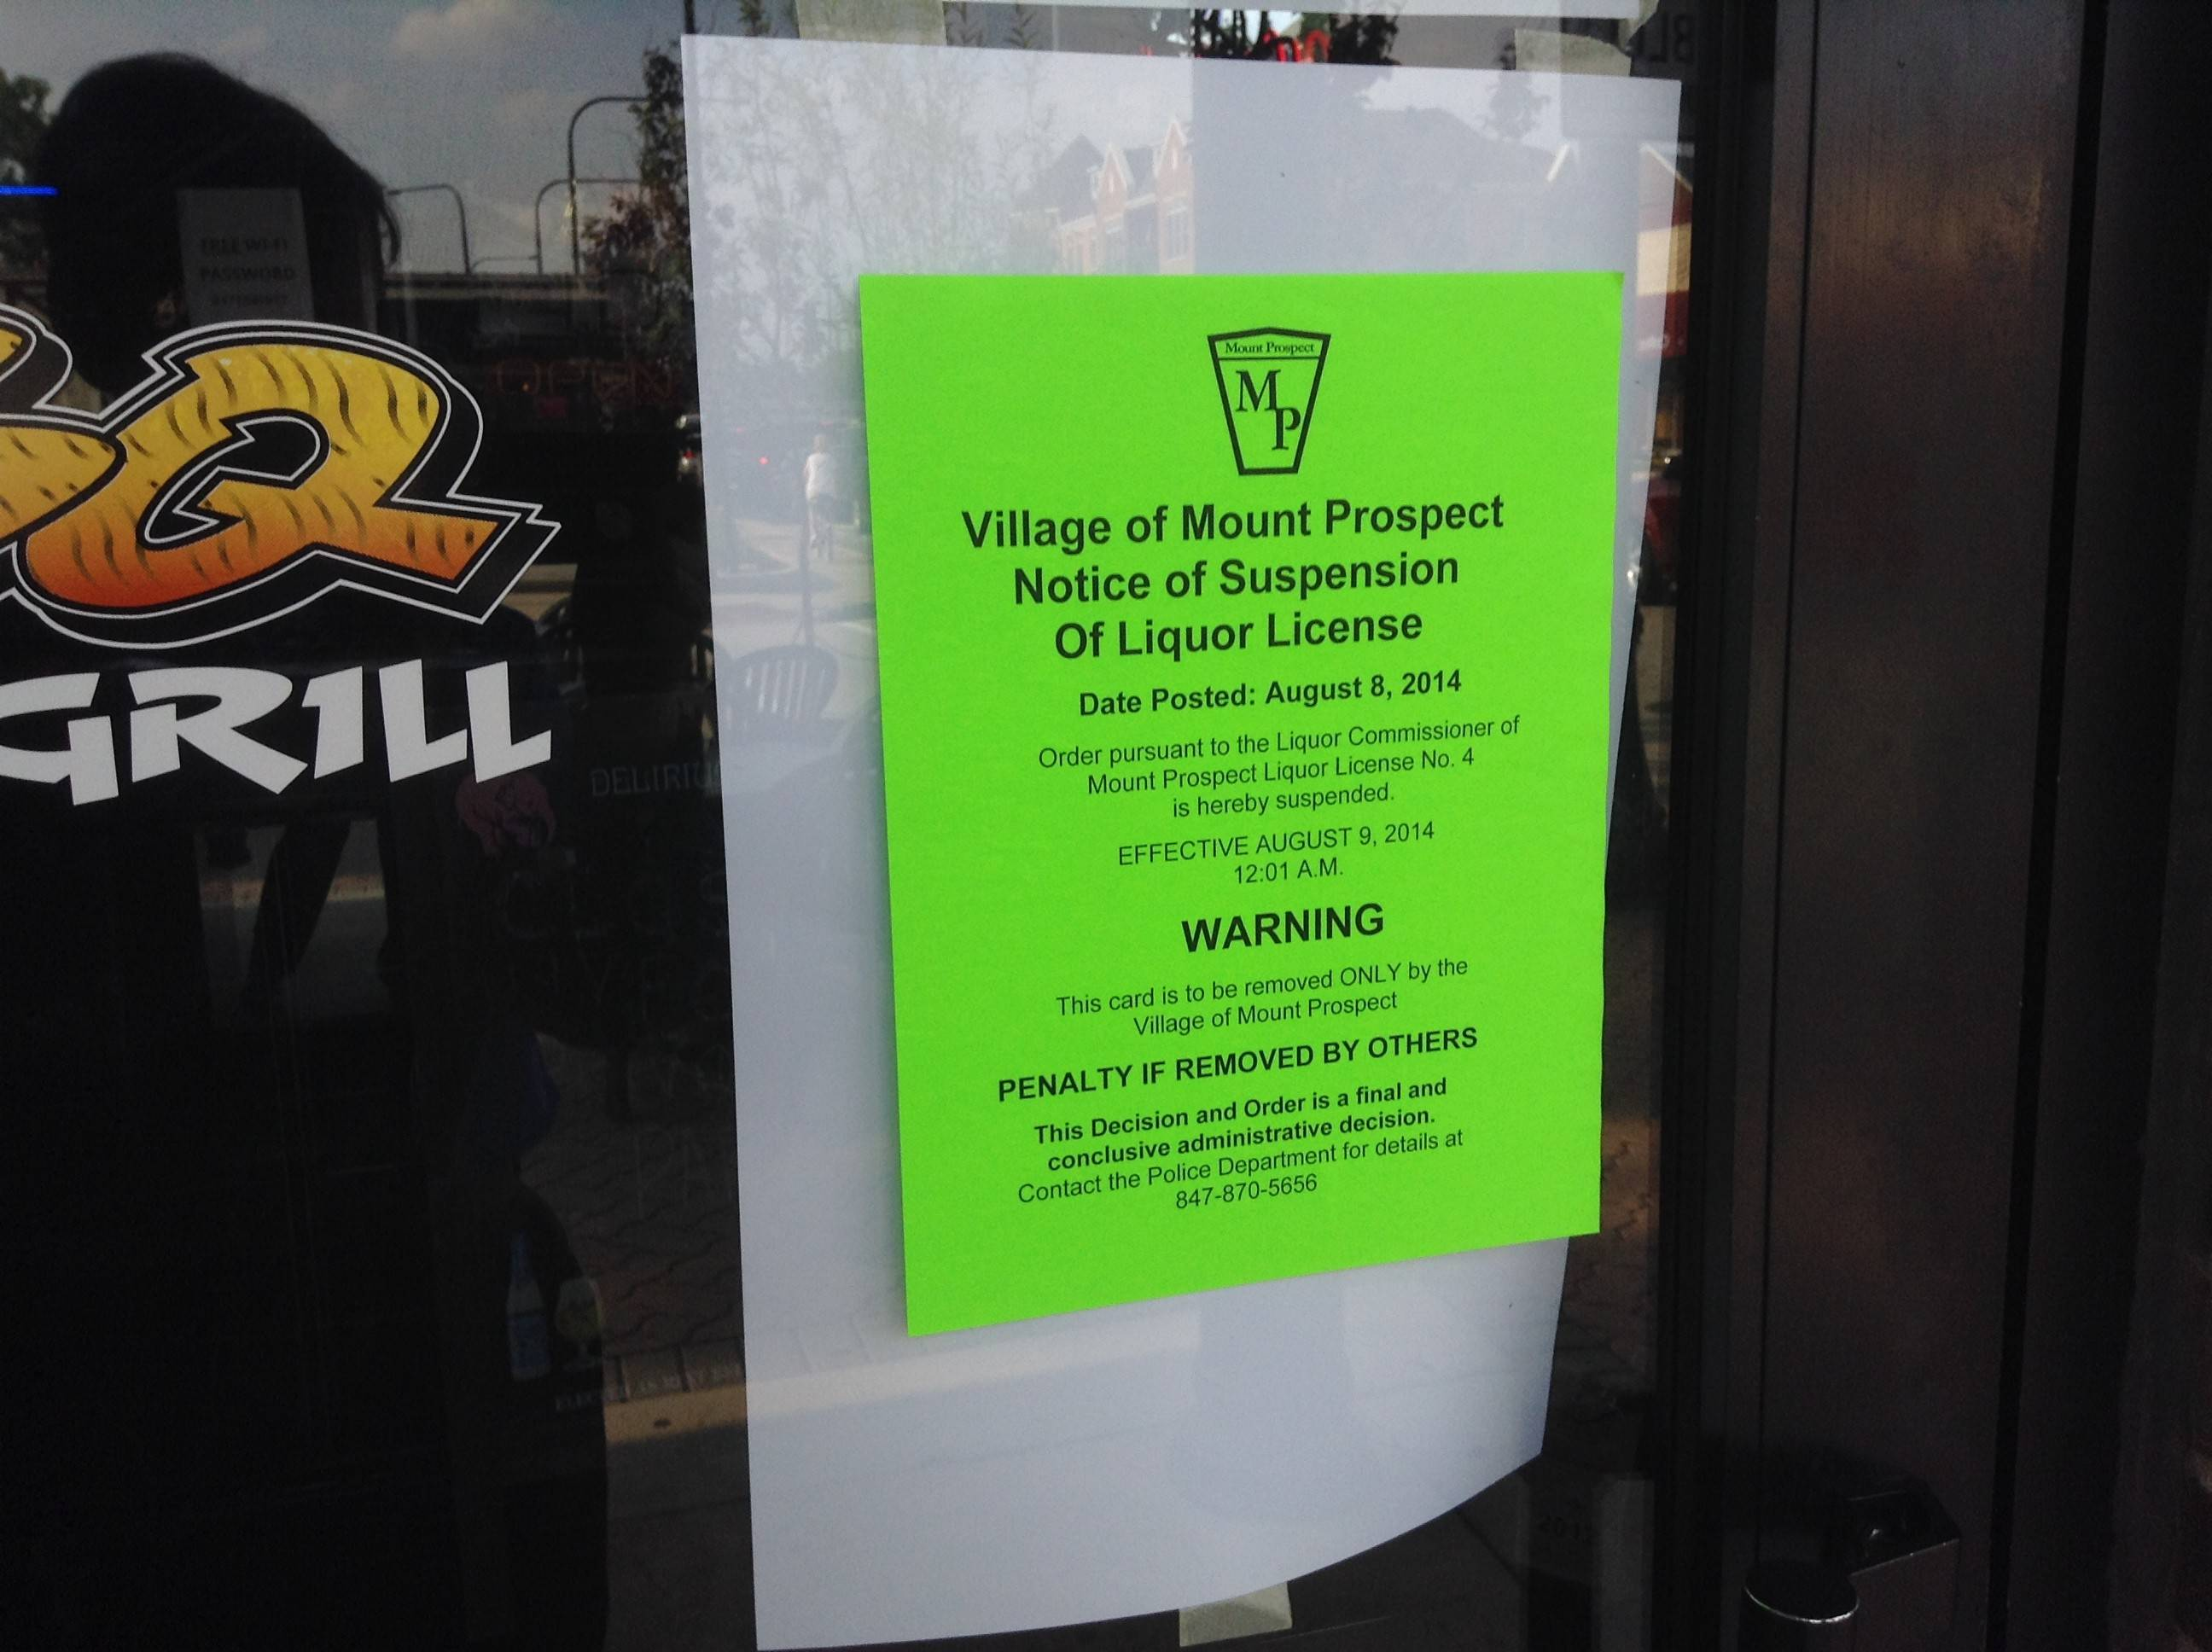 A notice of the suspension of Blues Bar's village liquor license was posted on the door of the Mount Prospect business Monday.